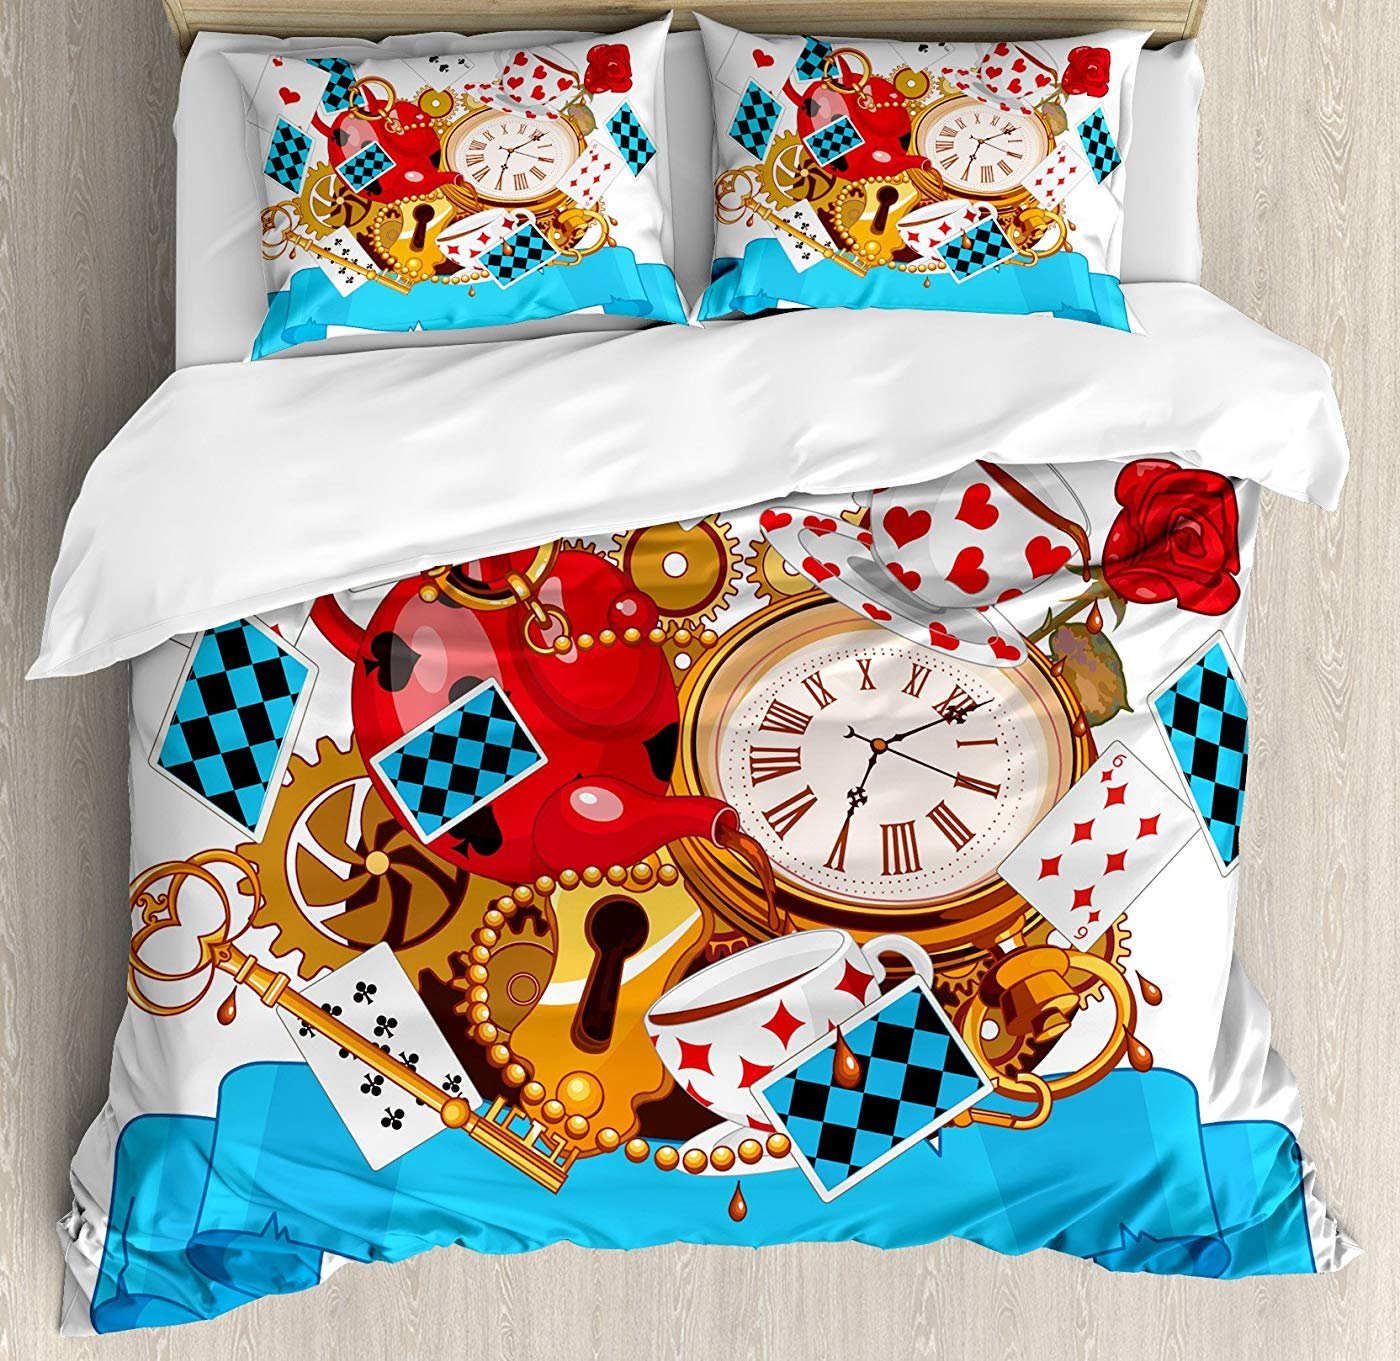 Multi 5 Twin Alice in Wonderland Duvet Cover Set Twin Size, Mad Design Cards Clocks Tea Pots Keys Flowers Fantasy World Illustration,Lightweight Microfiber Duvet Cover Sets, Multi